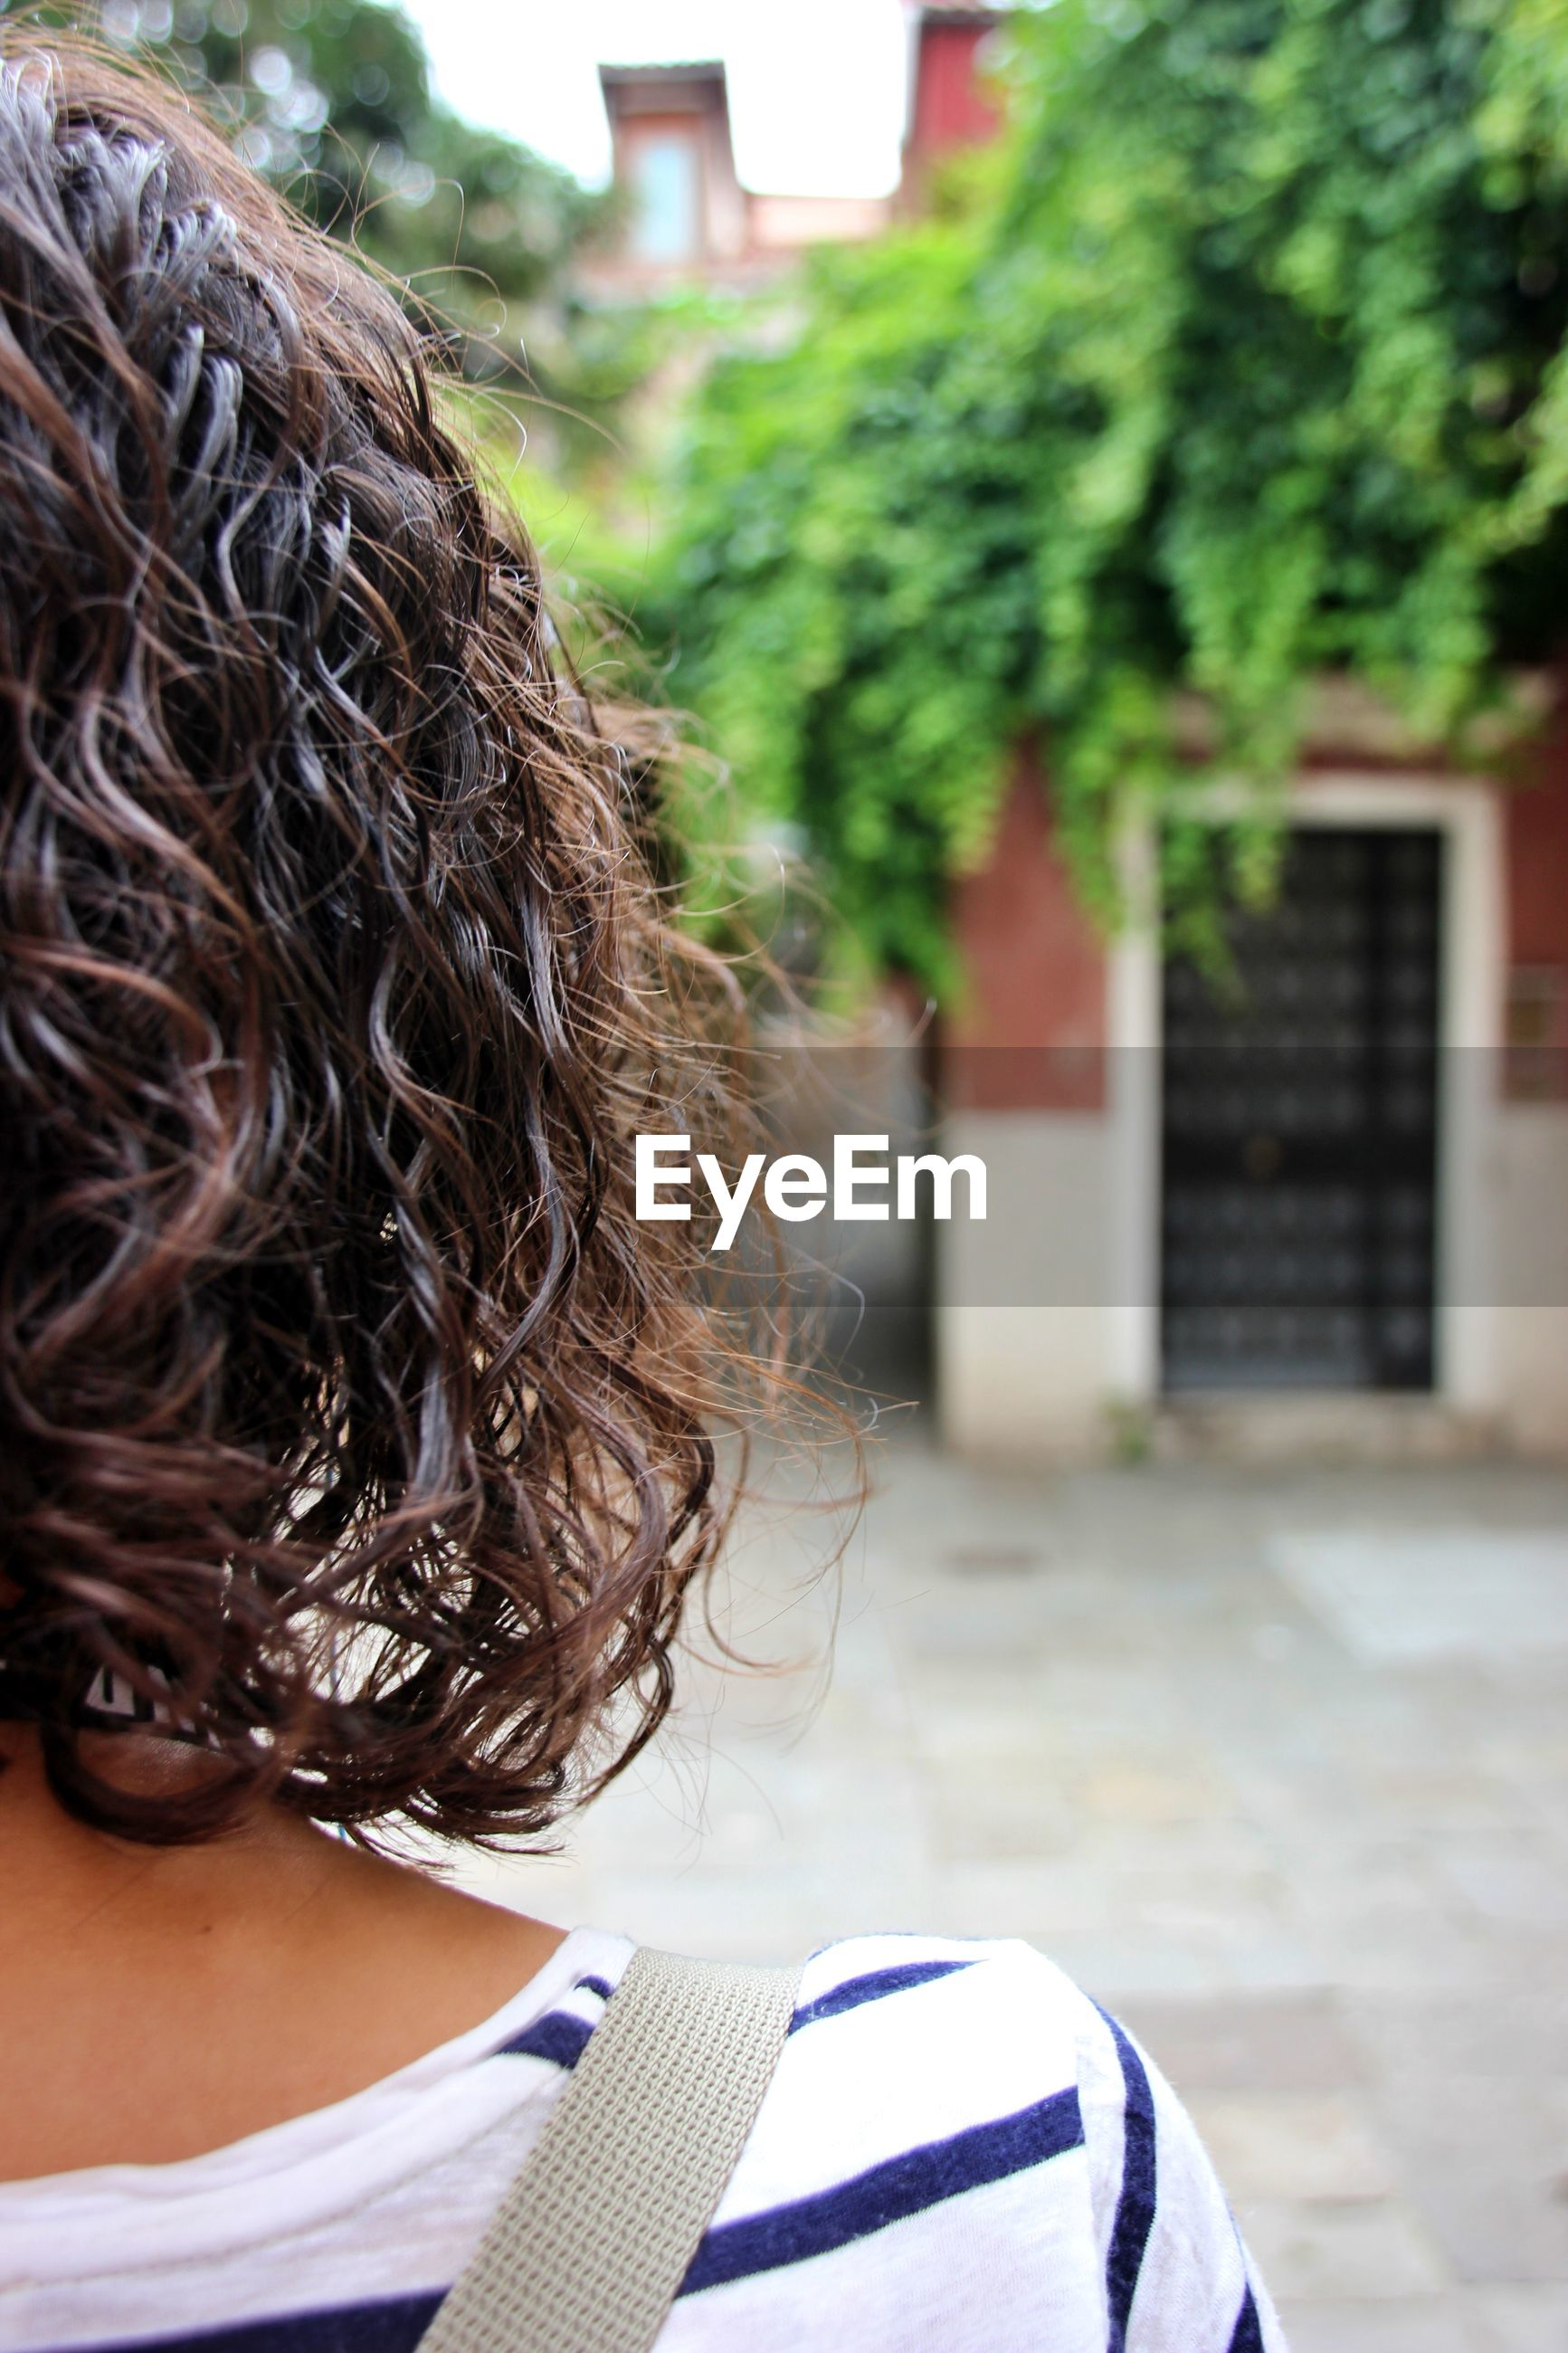 Rear view of woman with curly hair against tree